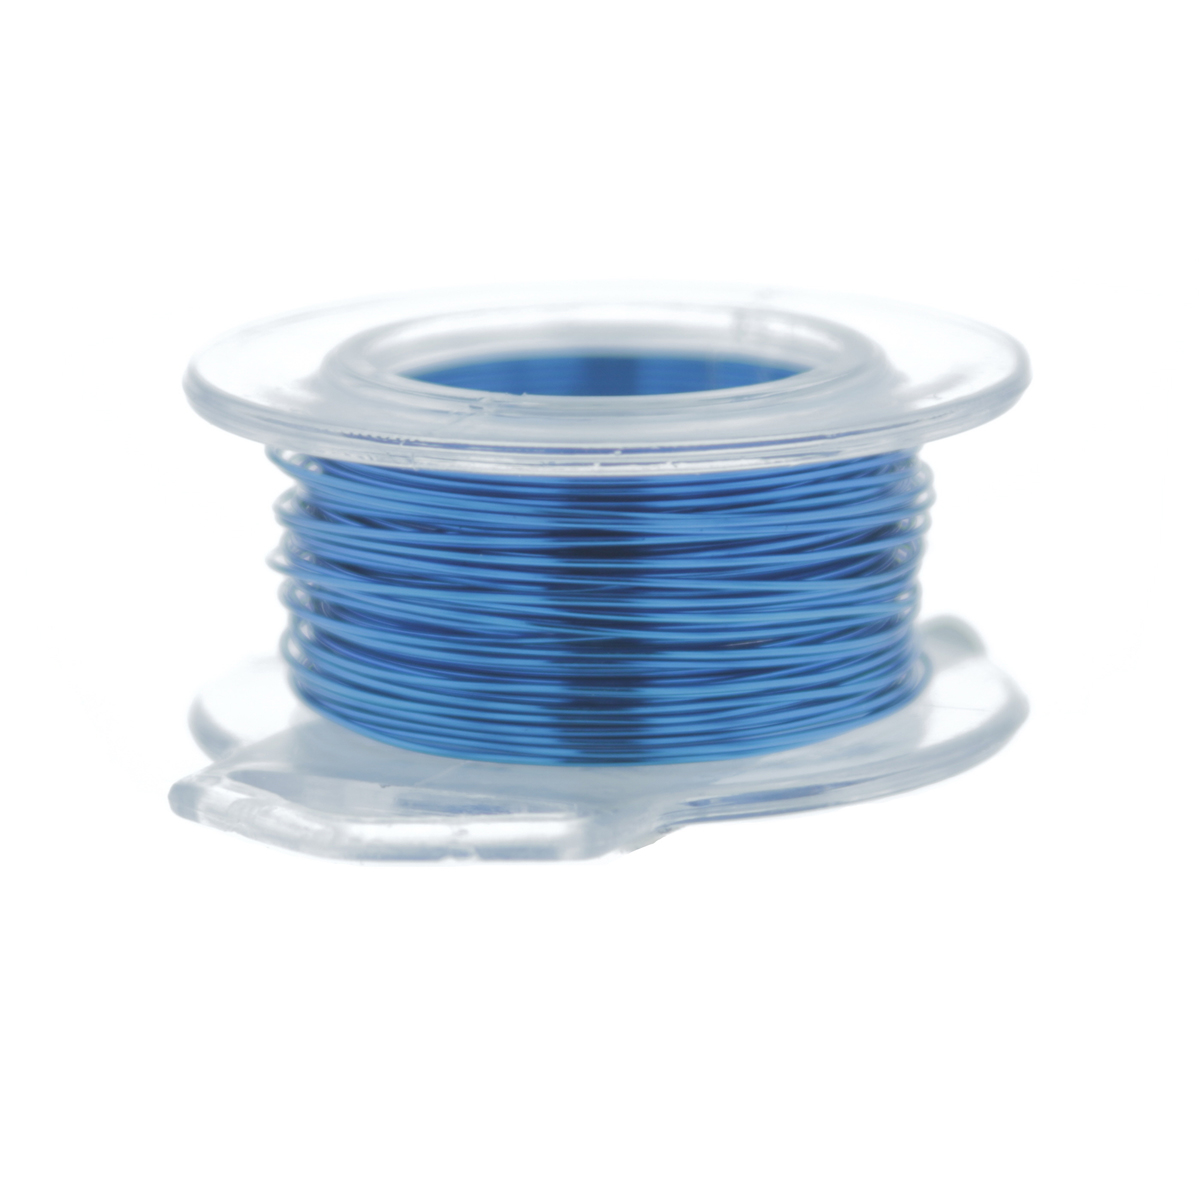 26 Gauge Round Silver Plated American Blue Copper Craft Wire - 45 ft ...